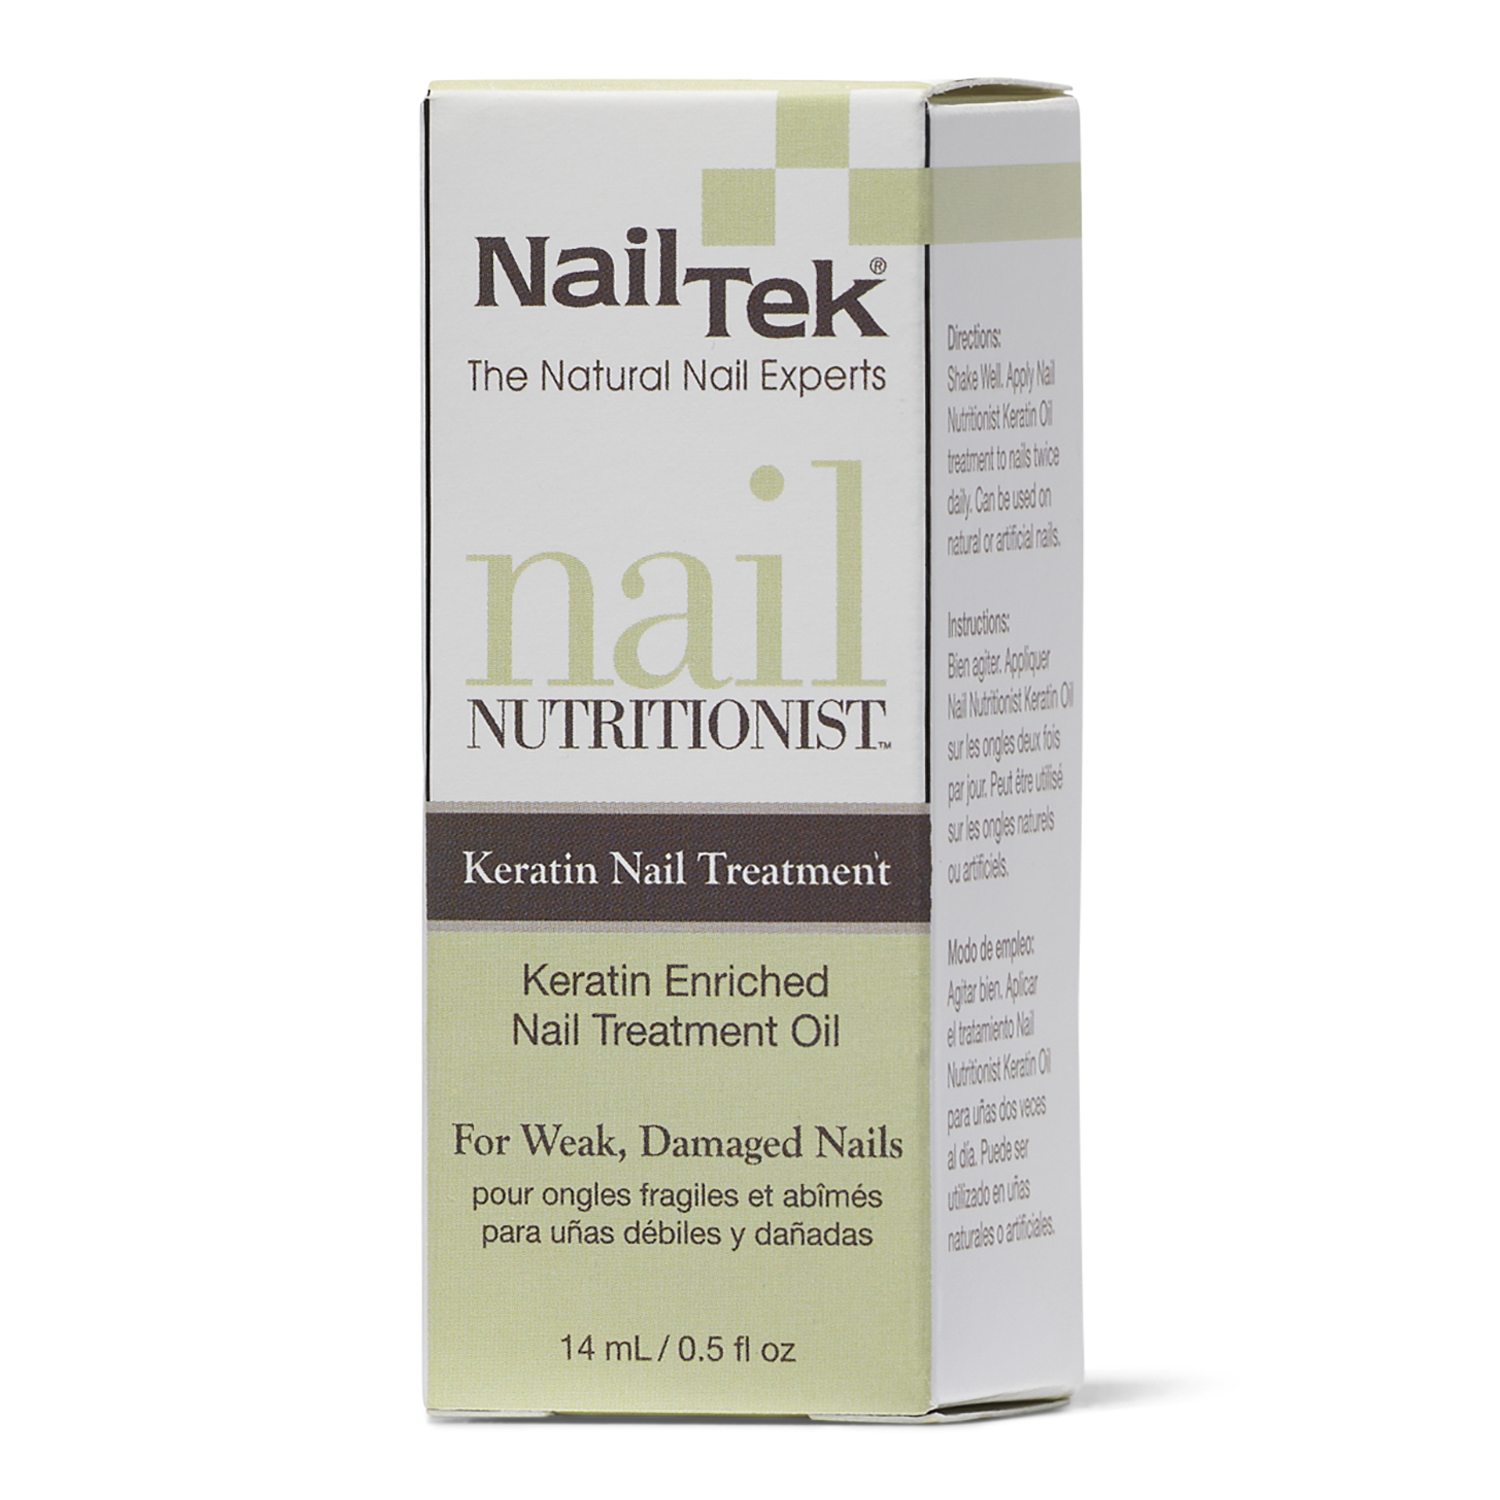 Nail Tek Nail Nutritionist with Keratin Oil